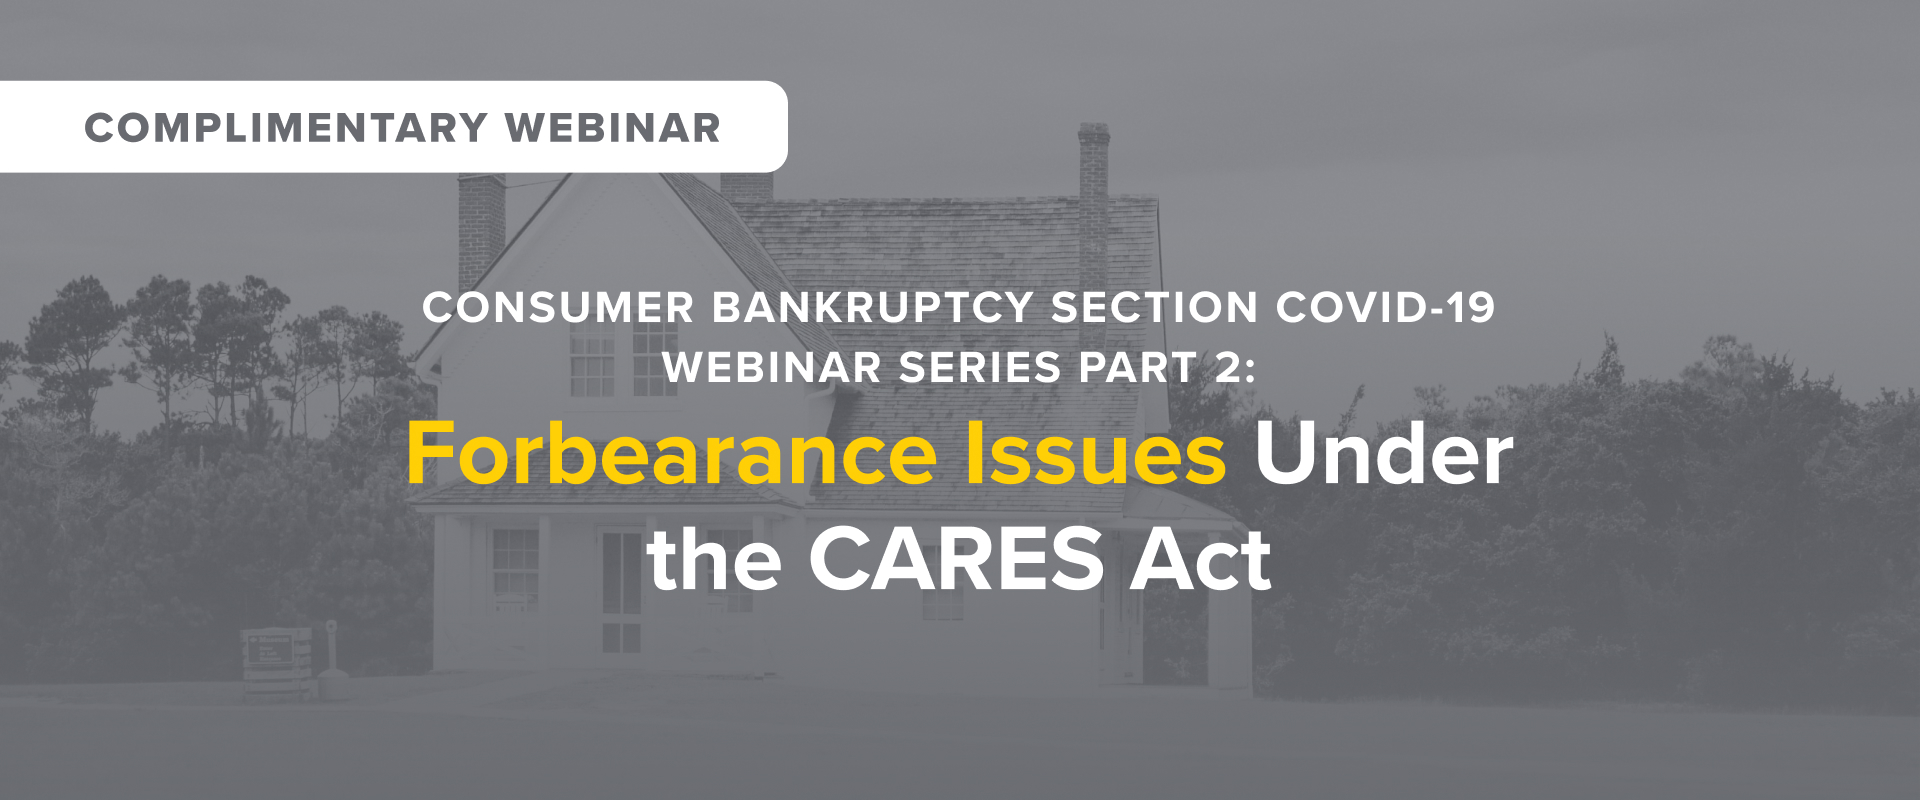 Consumer Bankruptcy Section Covid-19 Webinar: Forbearance of Student Loans and Mortgages Under the CARES Act